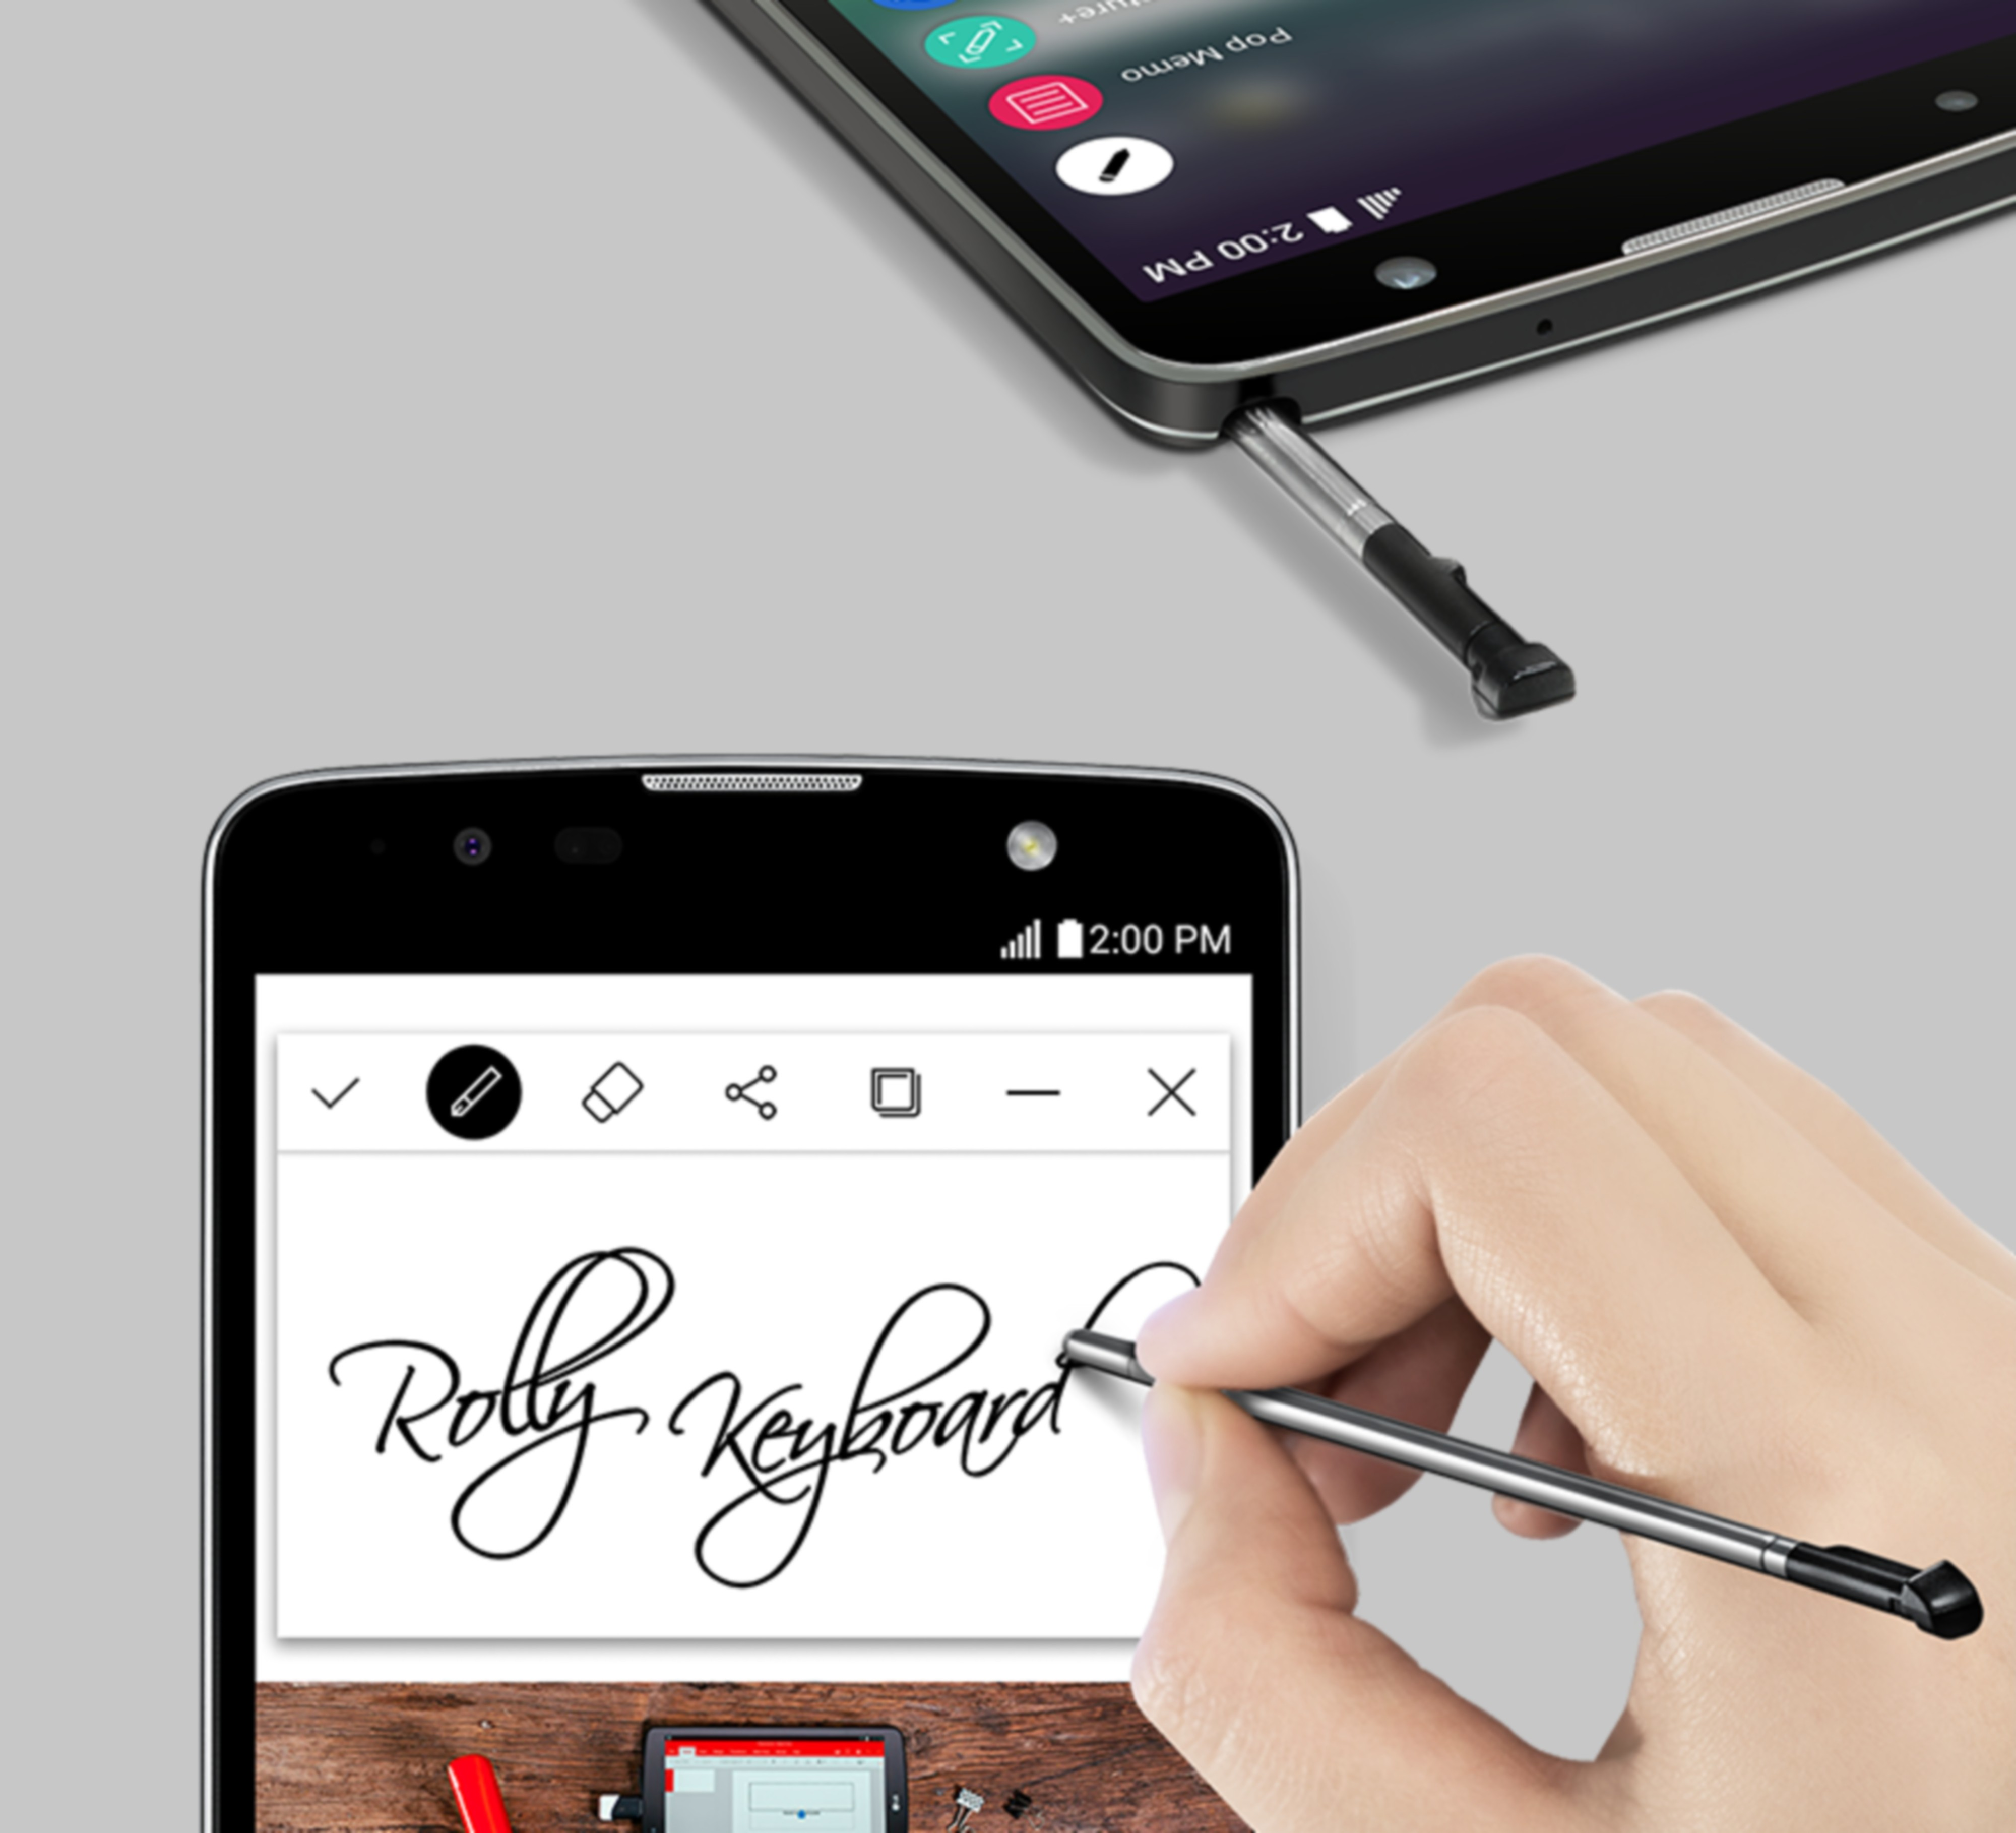 Fall Cell Phone Wallpaper Galaxy Note 7 Alternatives Best Android Phones With A Stylus